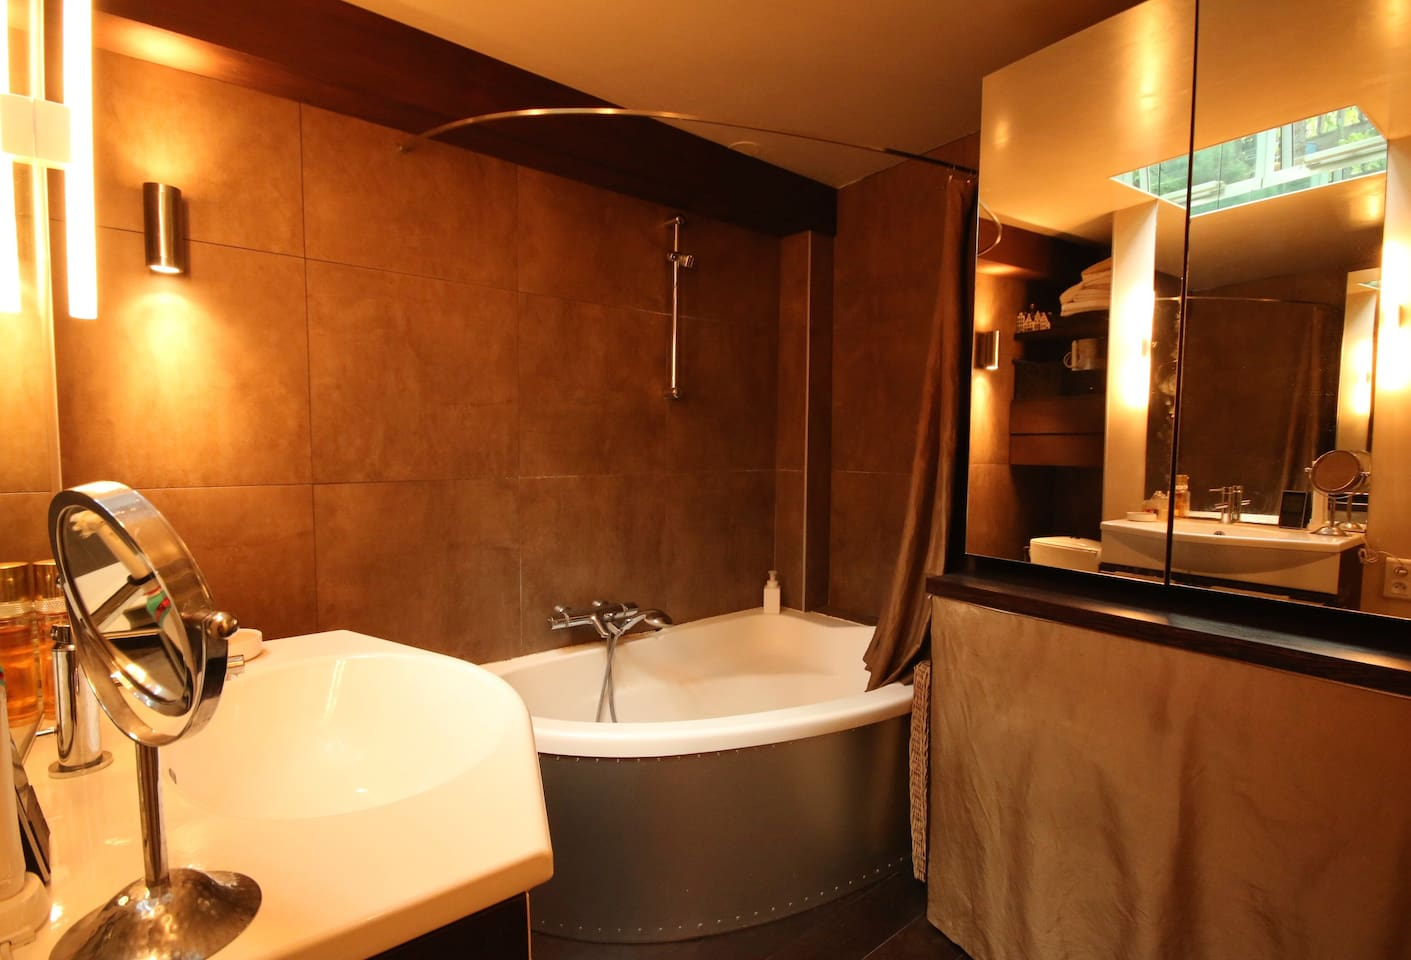 Shared ground floor bathroom